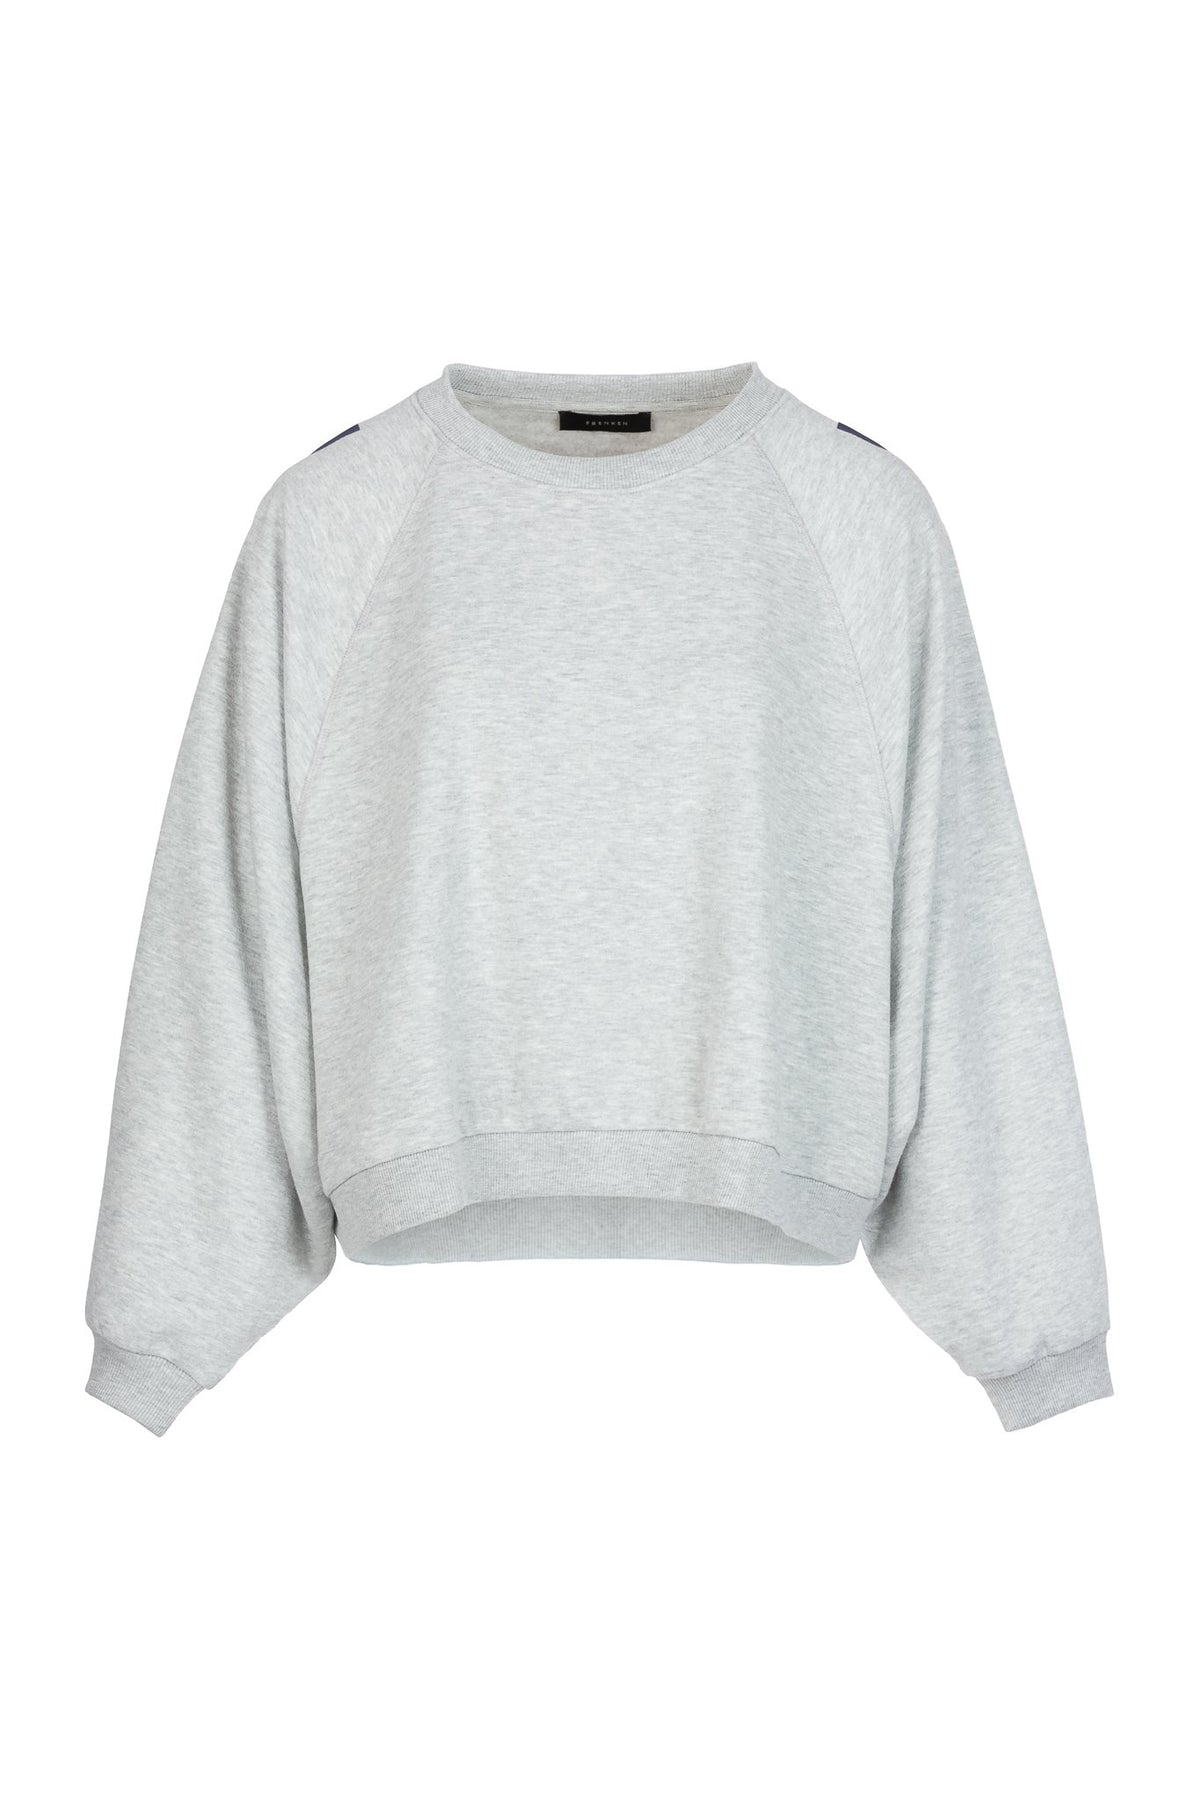 Etappe | Knitted Top | Grey Melange